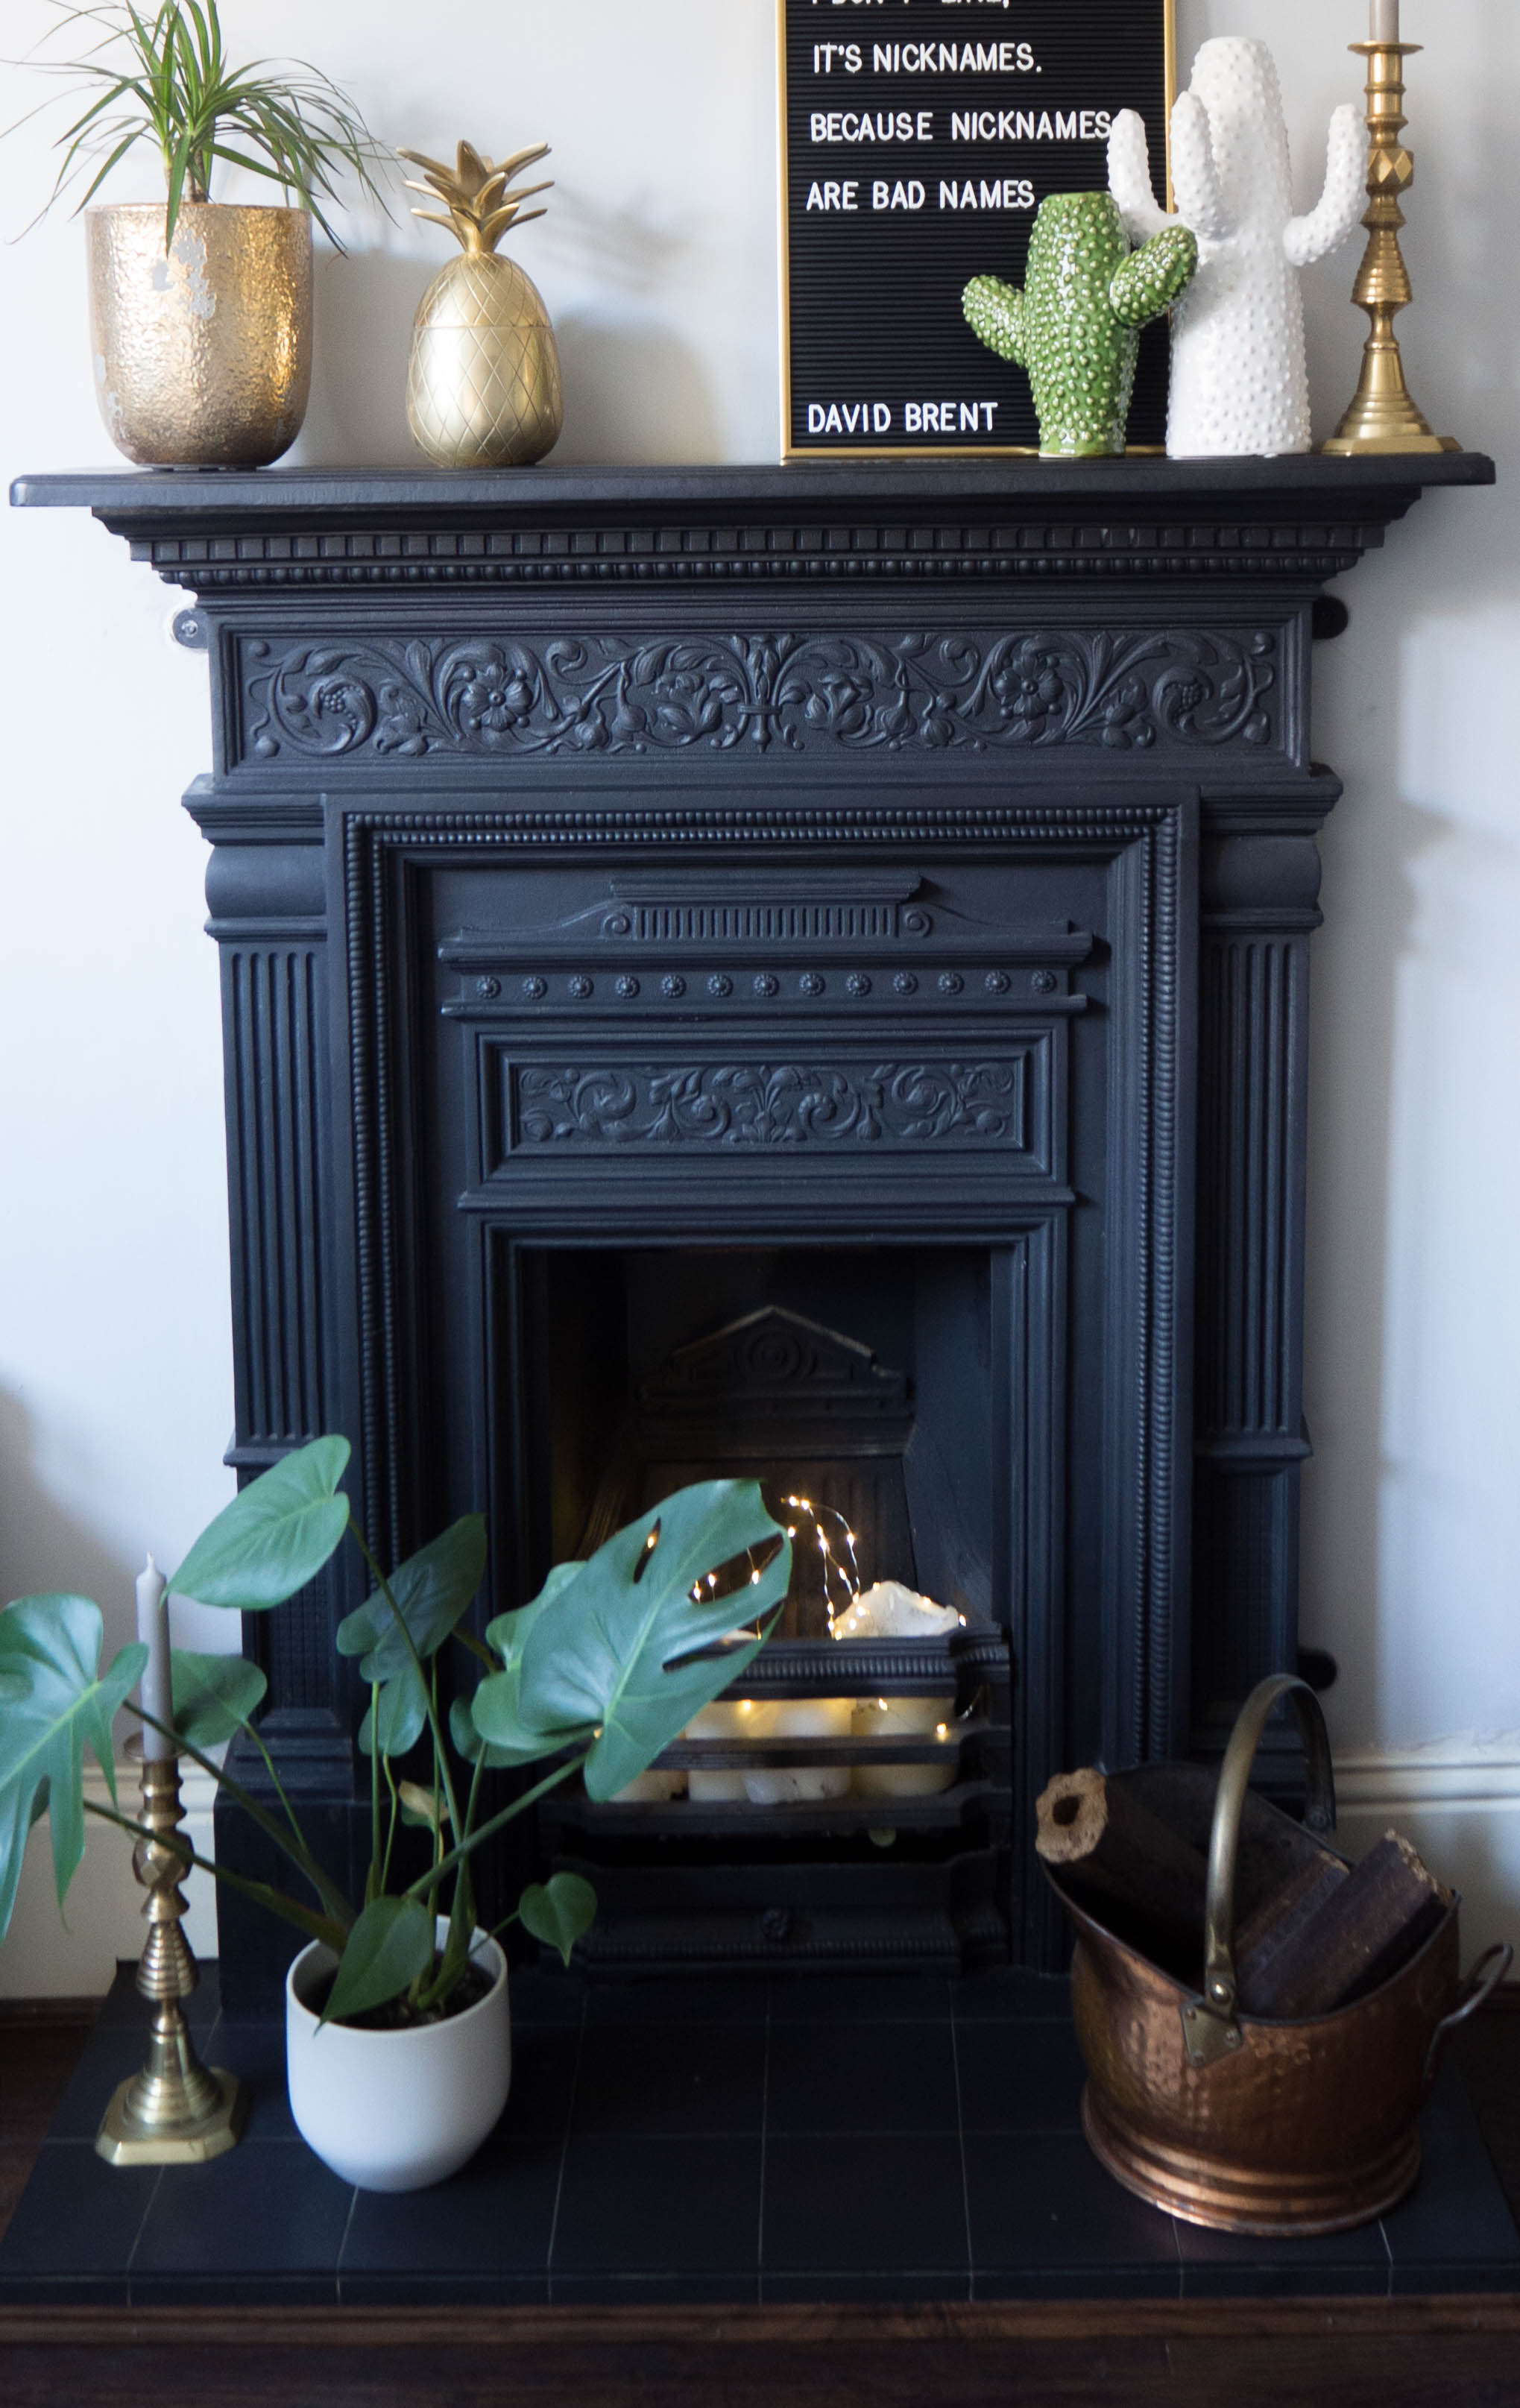 My cast iron fireplace surround with ceramic cactus vases, brass pineapple and a letter board.